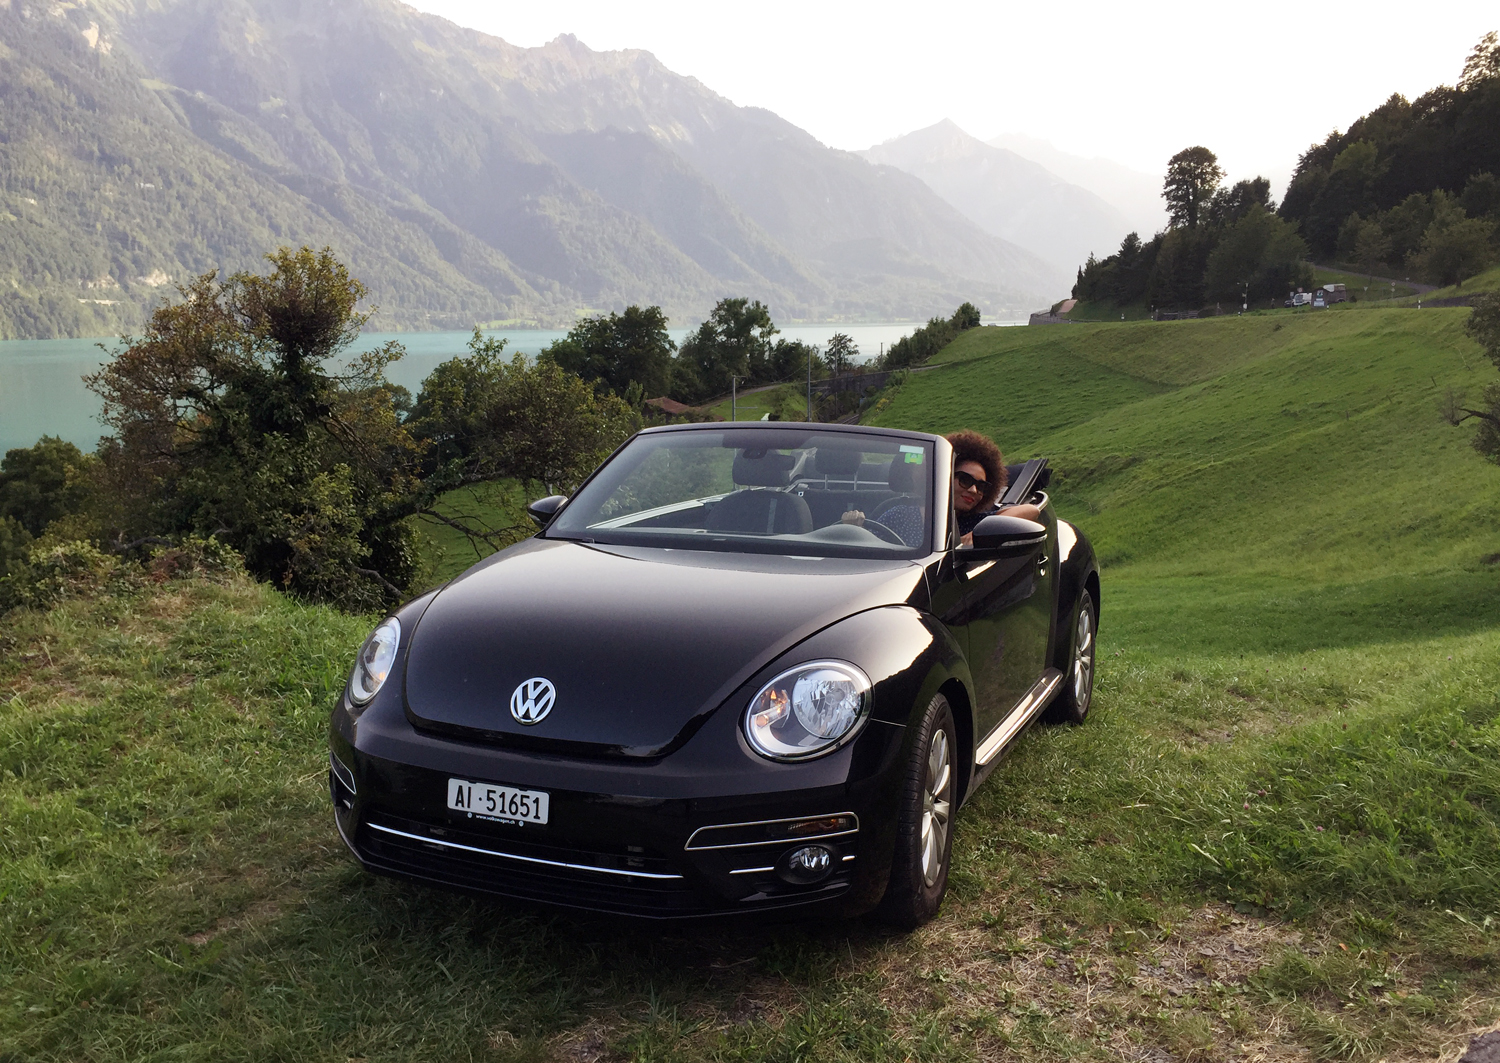 mercredie-blog-geneve-suisse-voyage-my-switzerland-grand-tour-roadtrip-europcar-accor-new-beetle-cabriolet-interlaken-decapotable